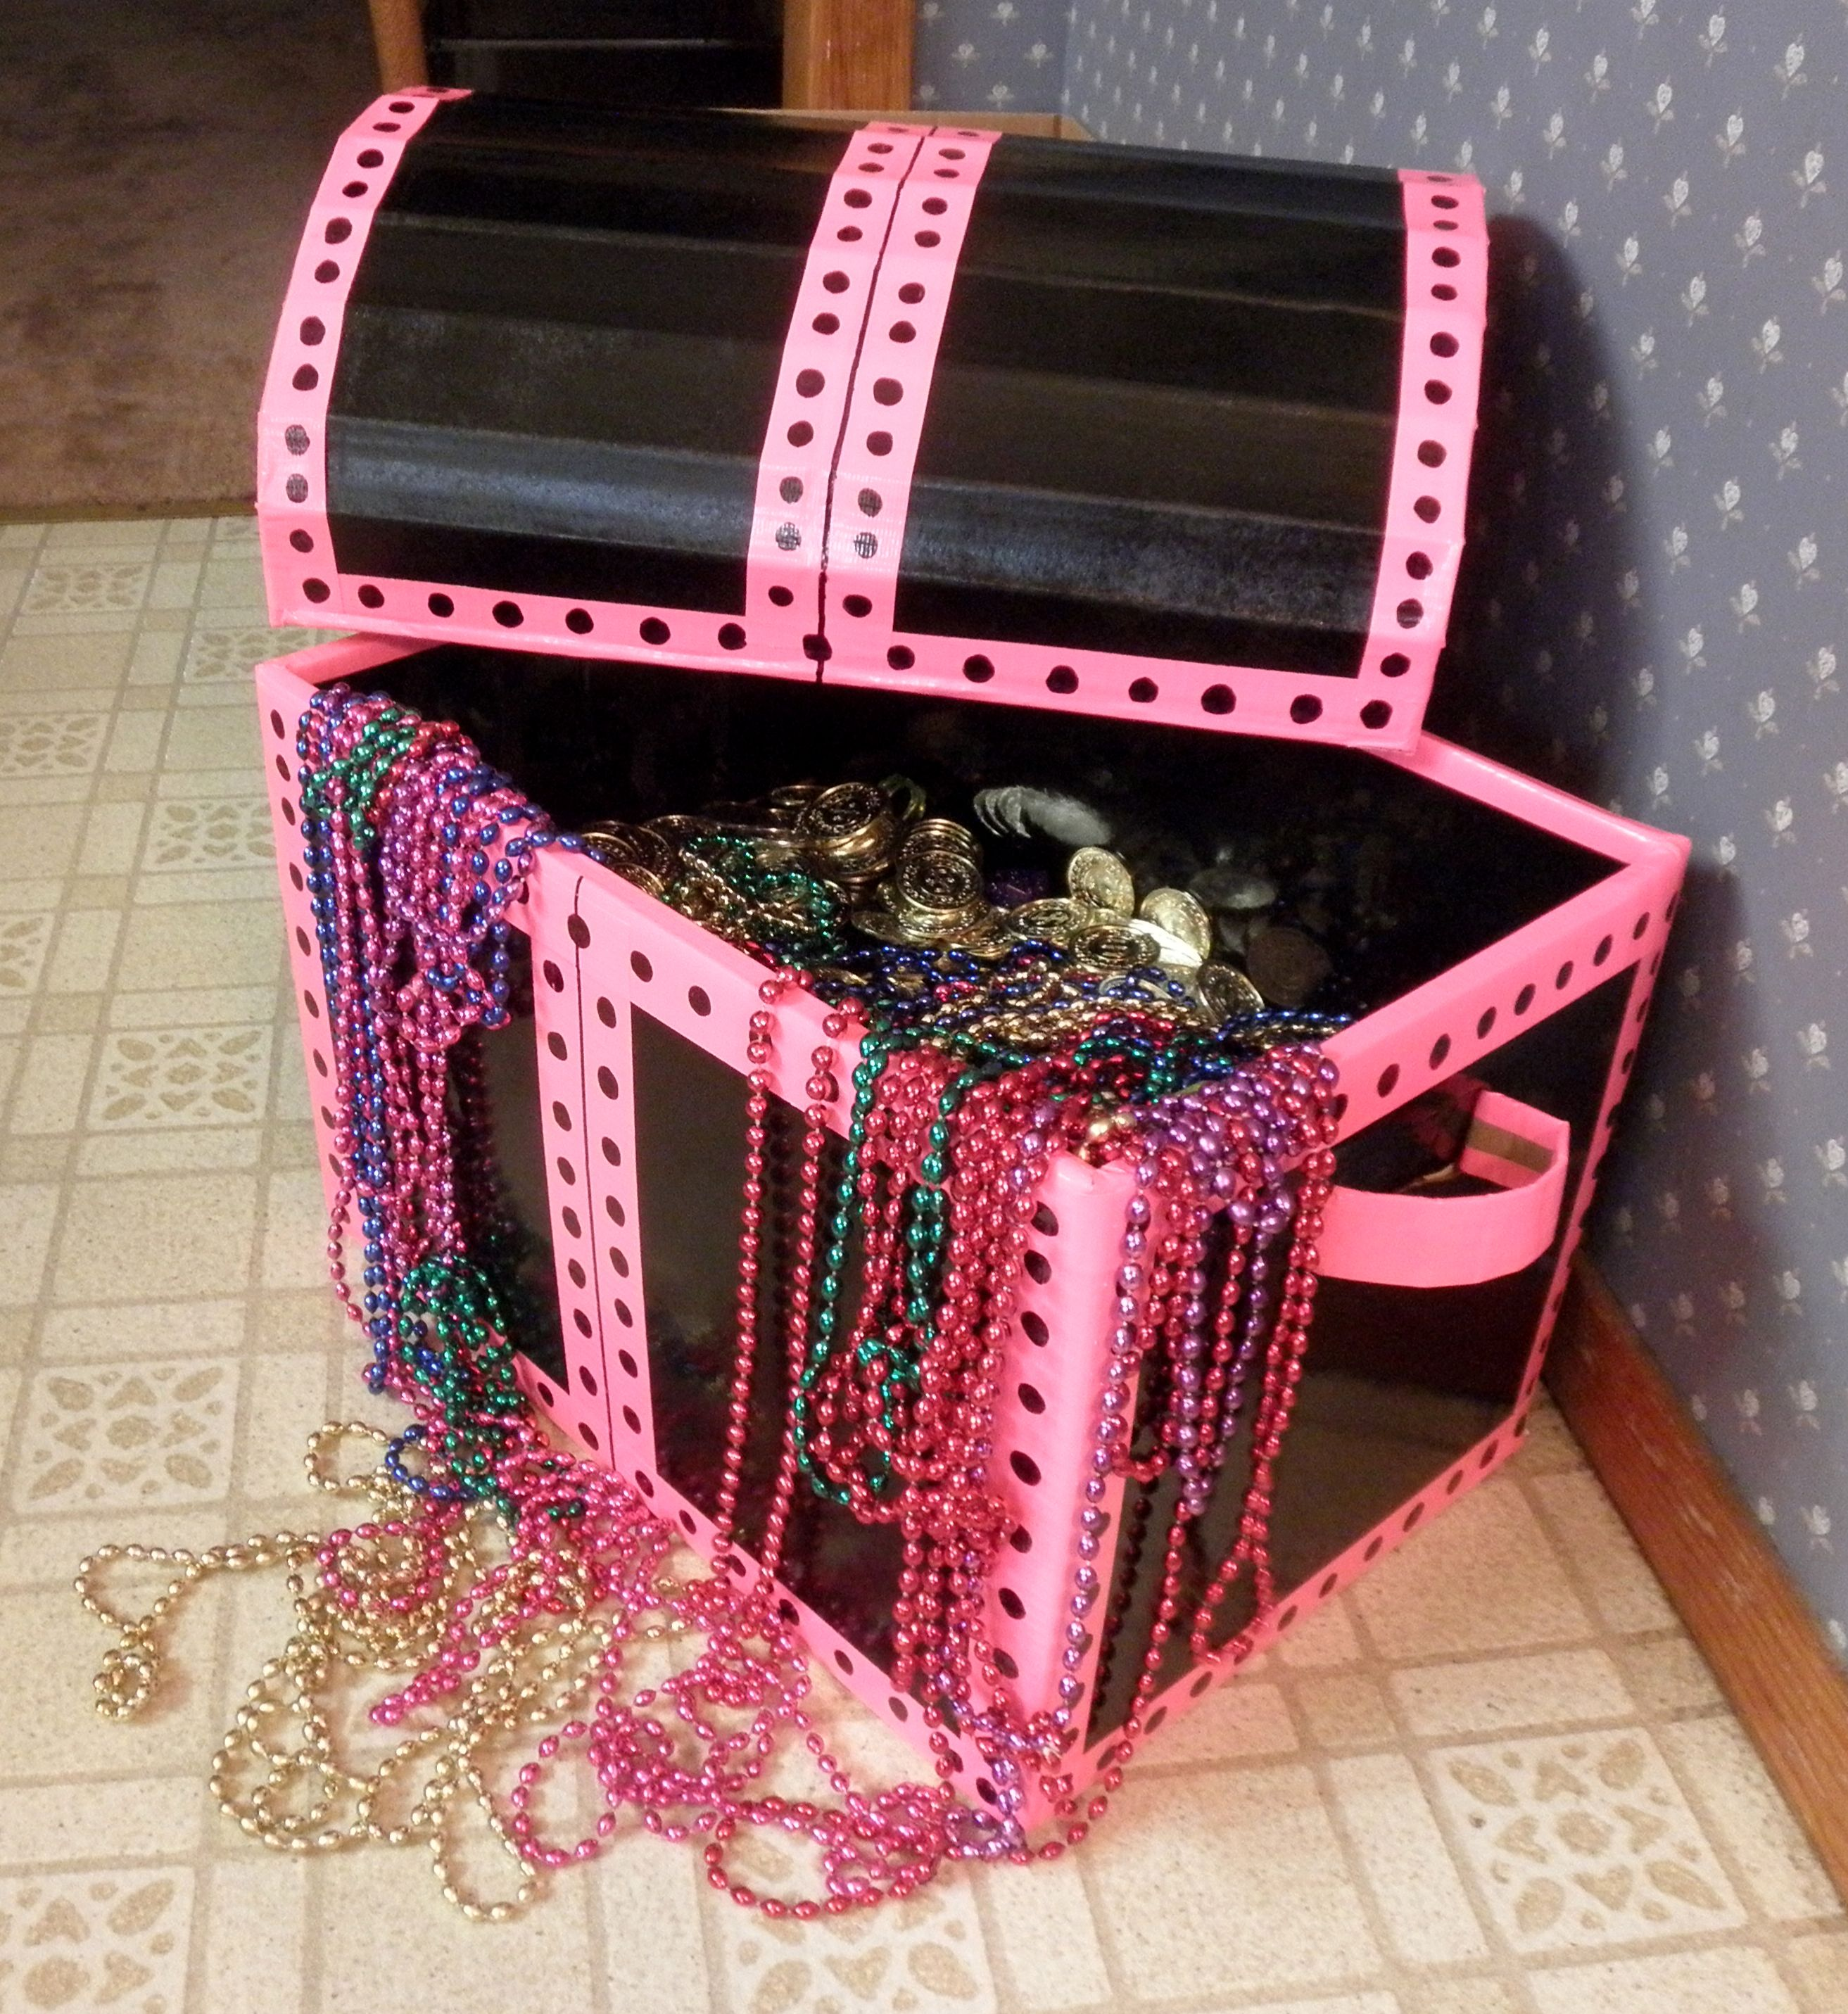 Pink girly treasure chest for Mermaid Birthday Party. Just cardboard ...